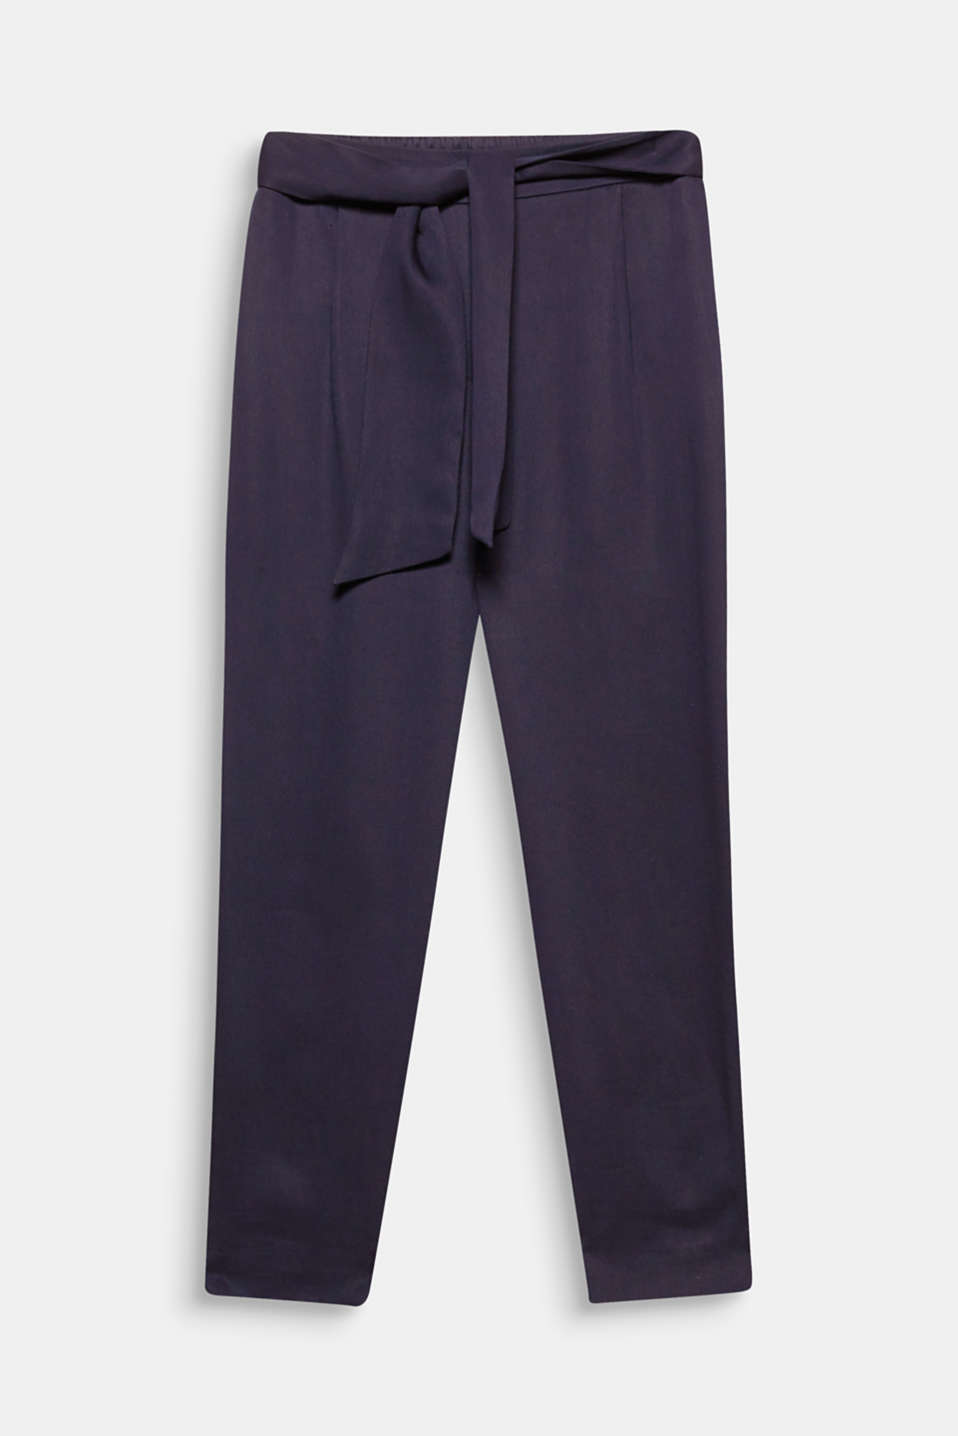 Make sure you are wearing the trousers with this cropped design in flowing, textured lyocell with an elasticated waistband and fixed tie belt!